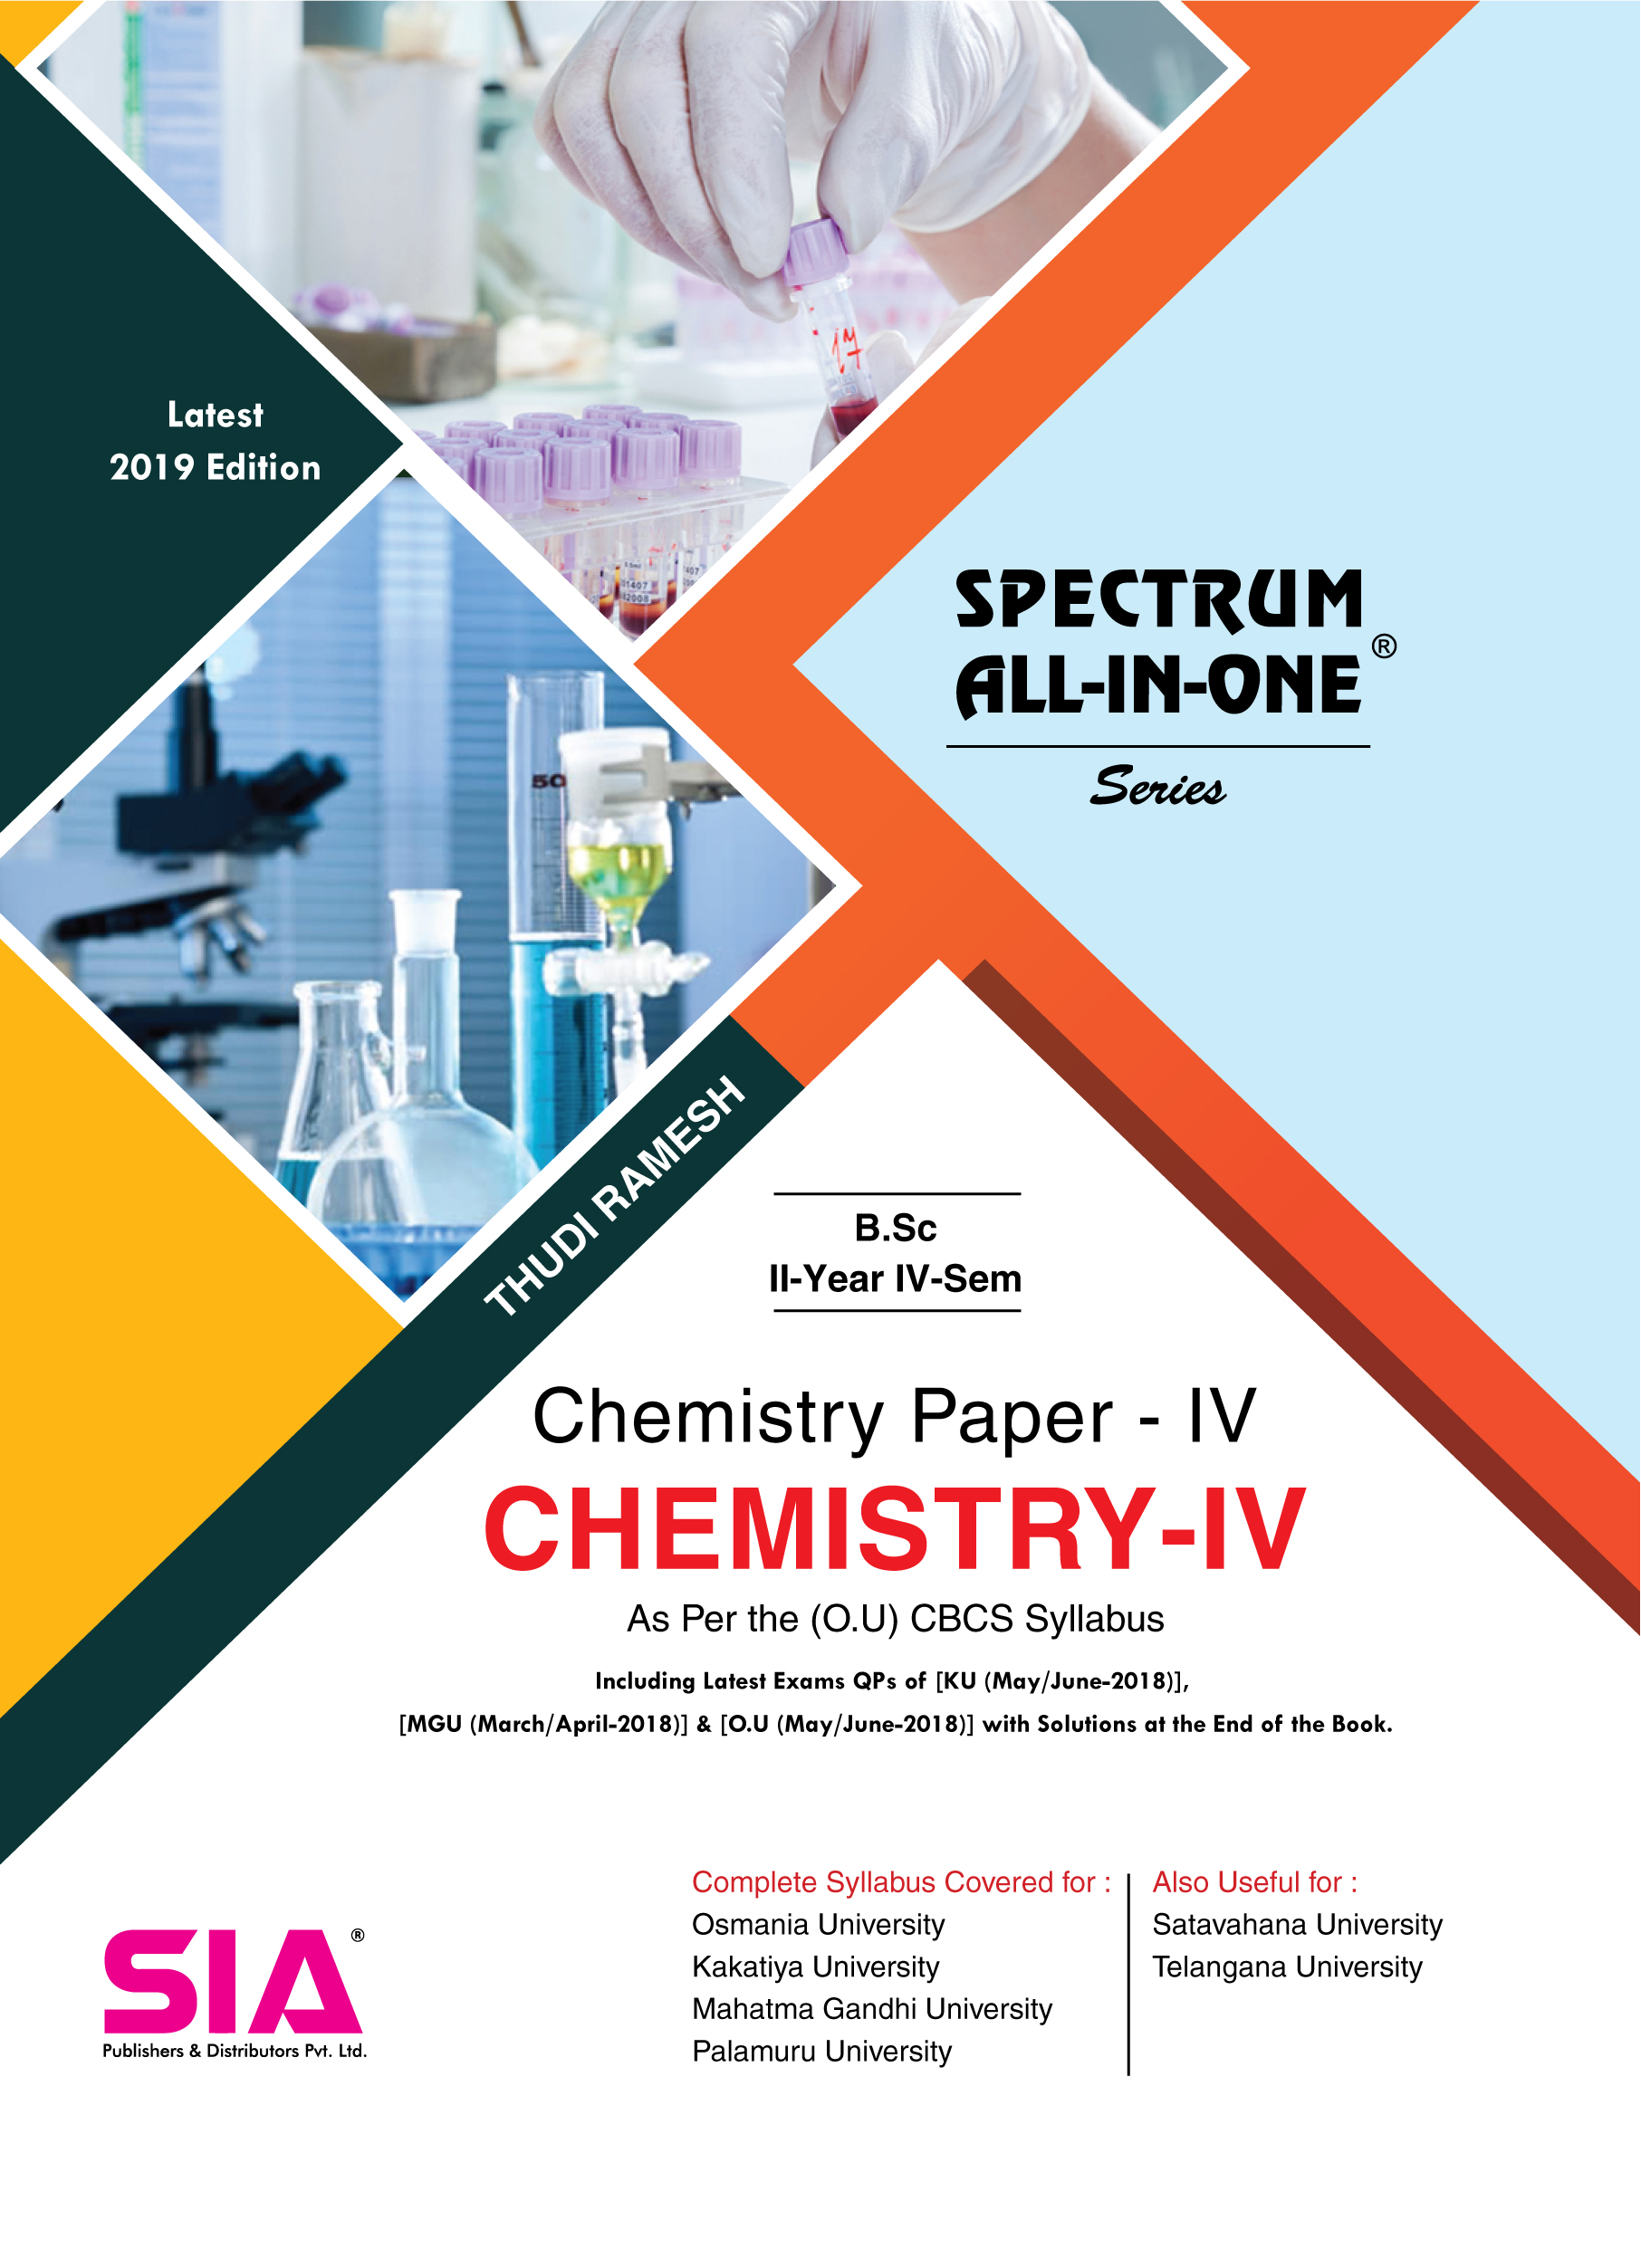 SIA Publishers arts-and-science-bsc-osmania-university